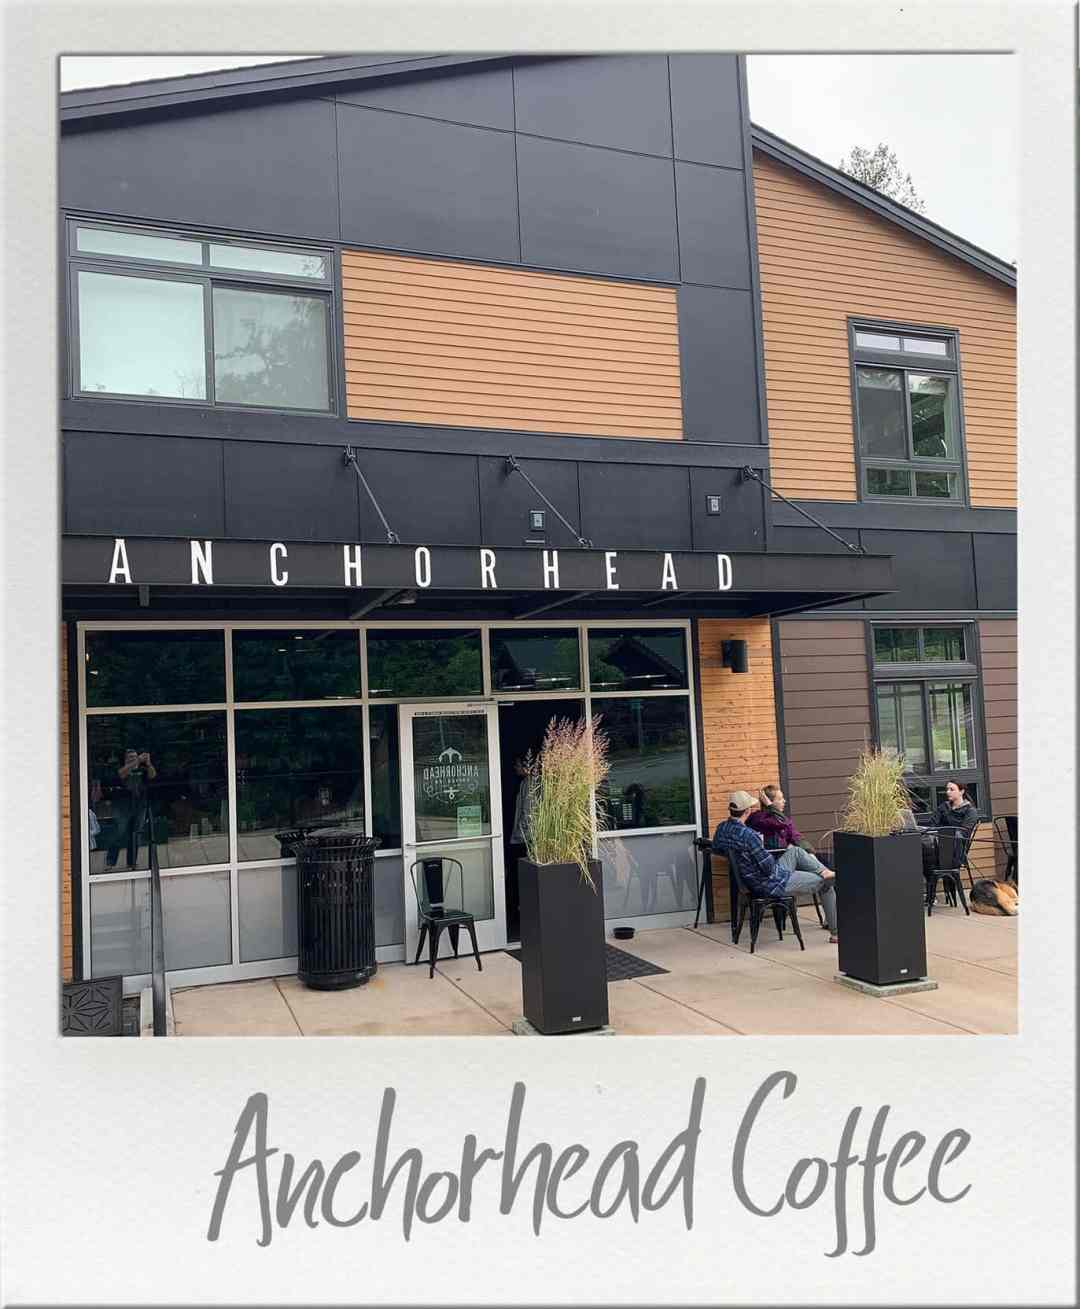 Anchorhead Coffee Issaquah Storefront.